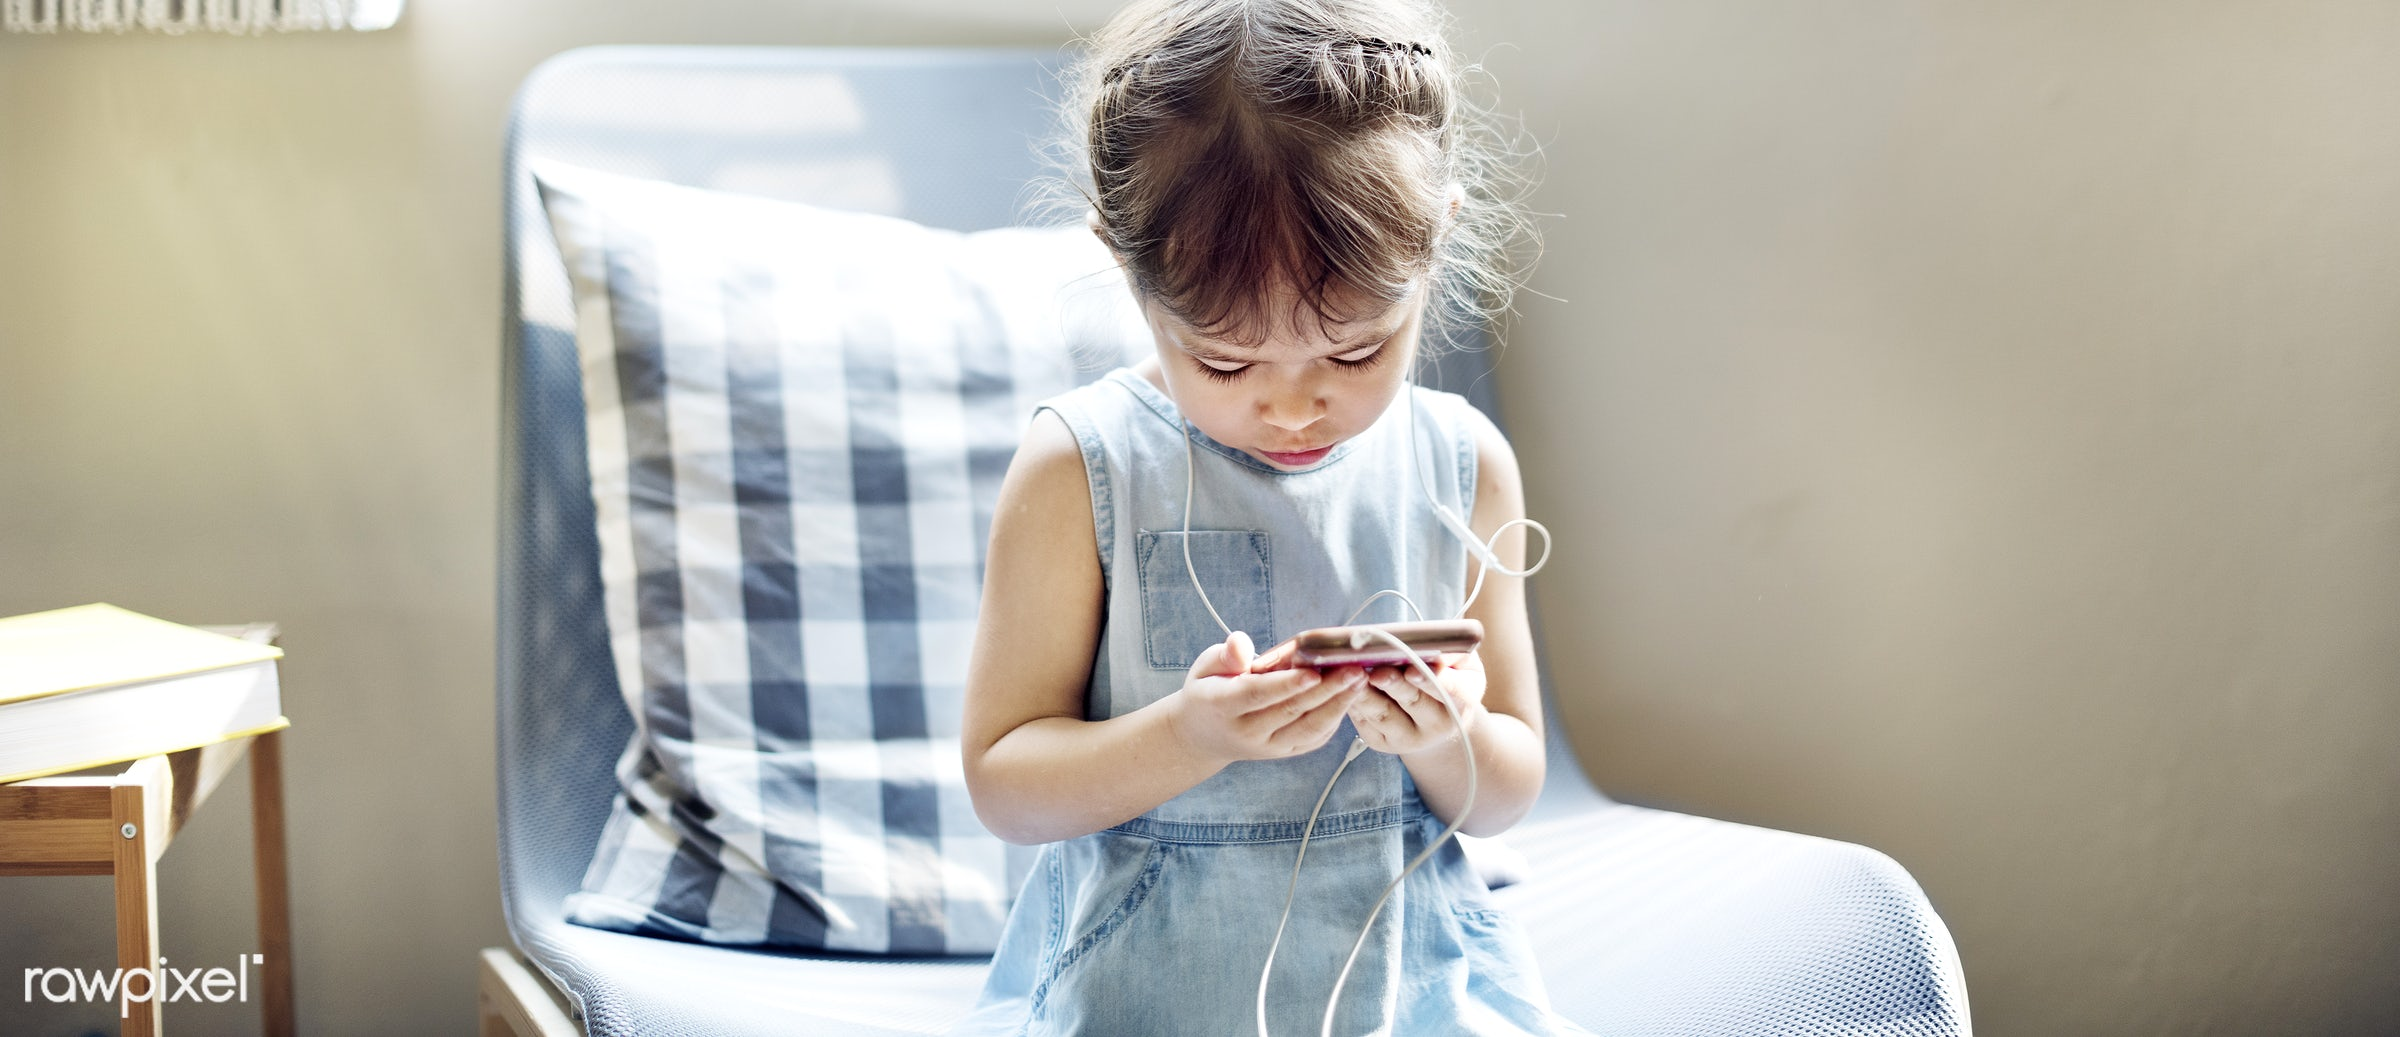 activity, adolescence, browsing, casual, cellphone, cheerful, child, childhood, children, communication, connecting,...